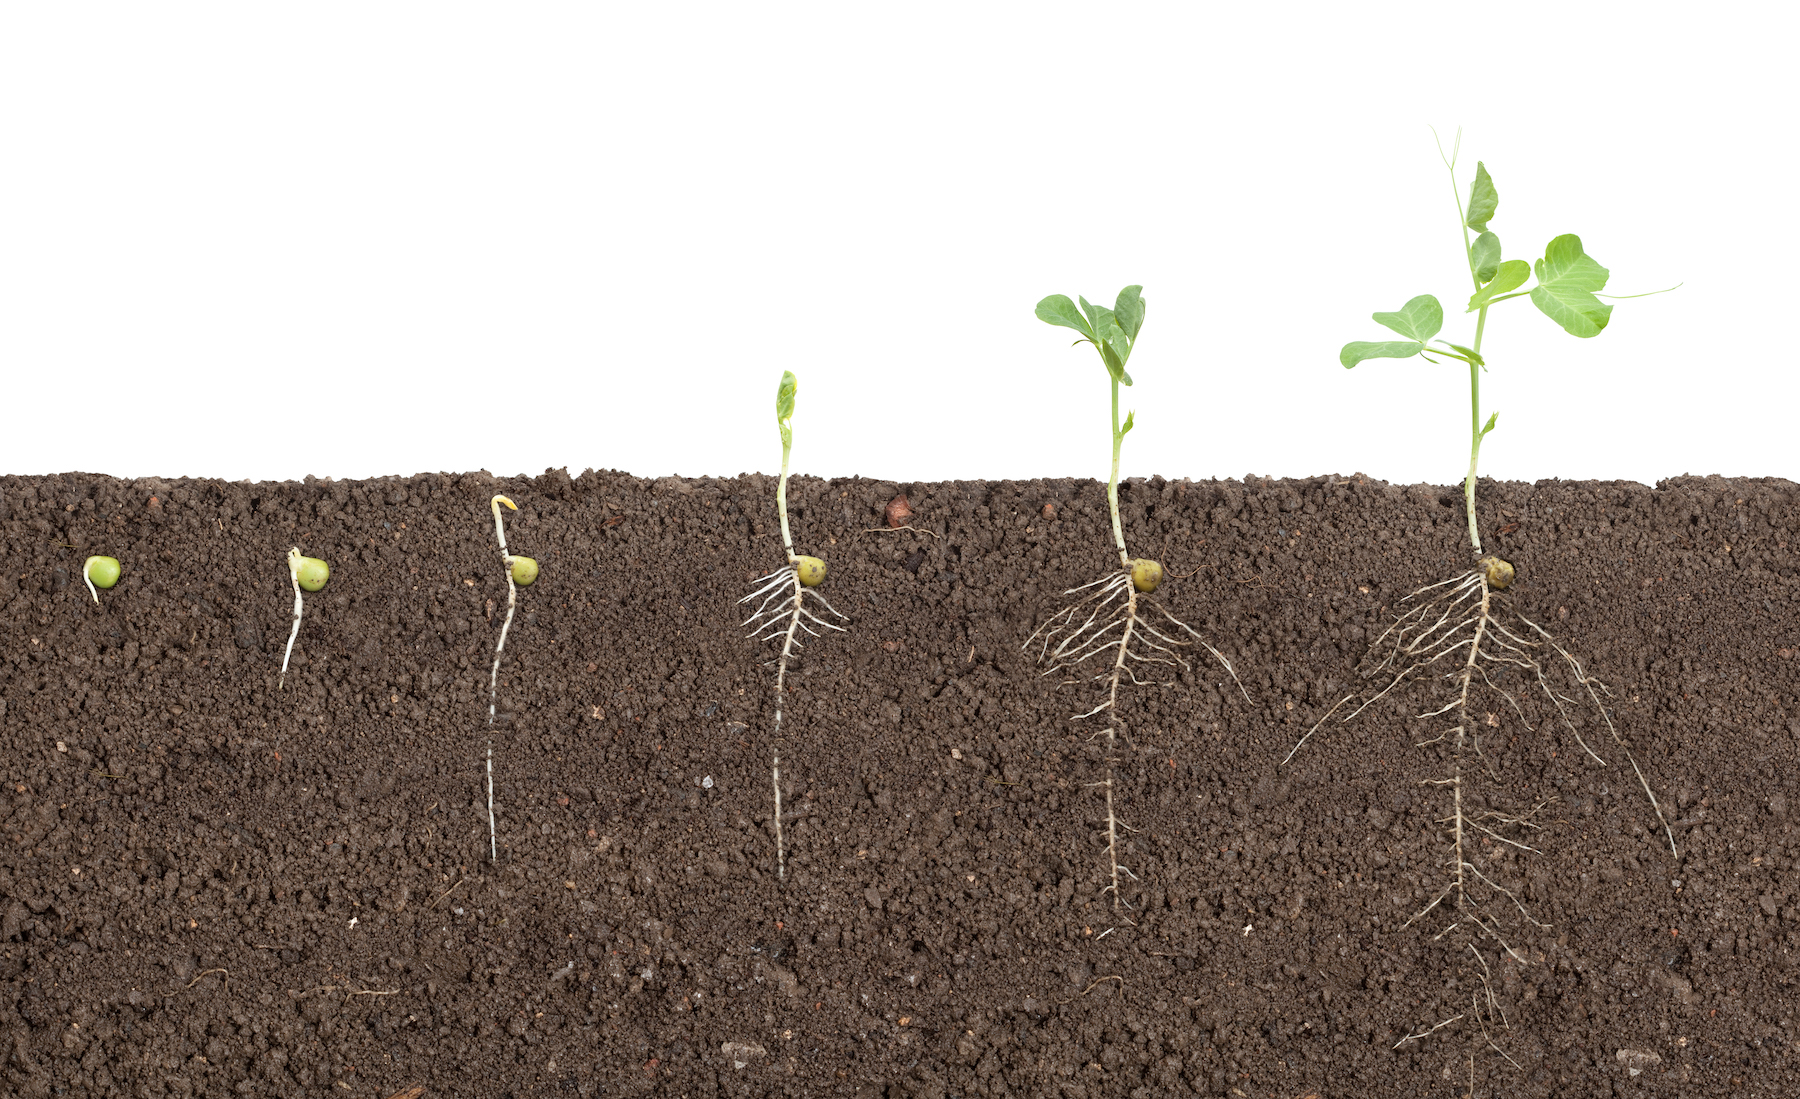 seedlings germinating in soil with roots visible